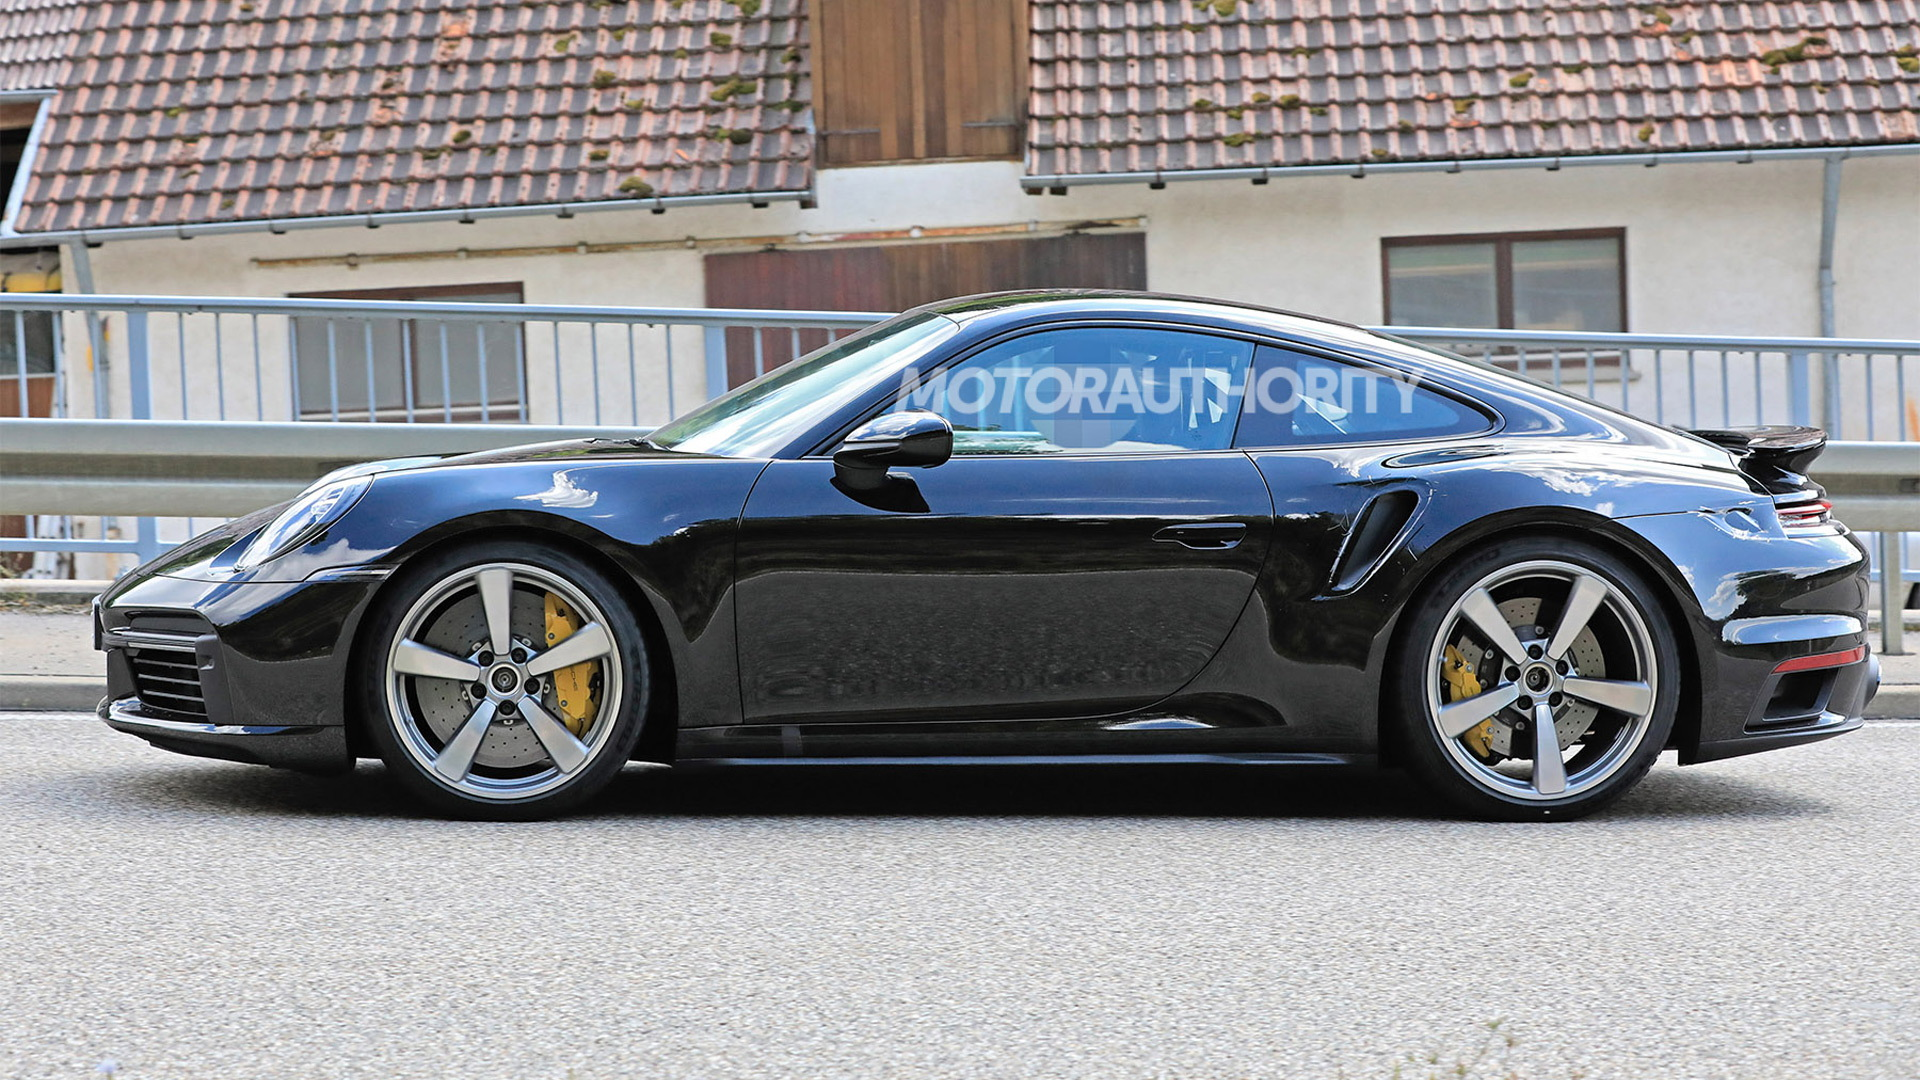 2020 Porsche 911 Turbo spy shots - Photo credit: S. Baldauf/SB-Medien